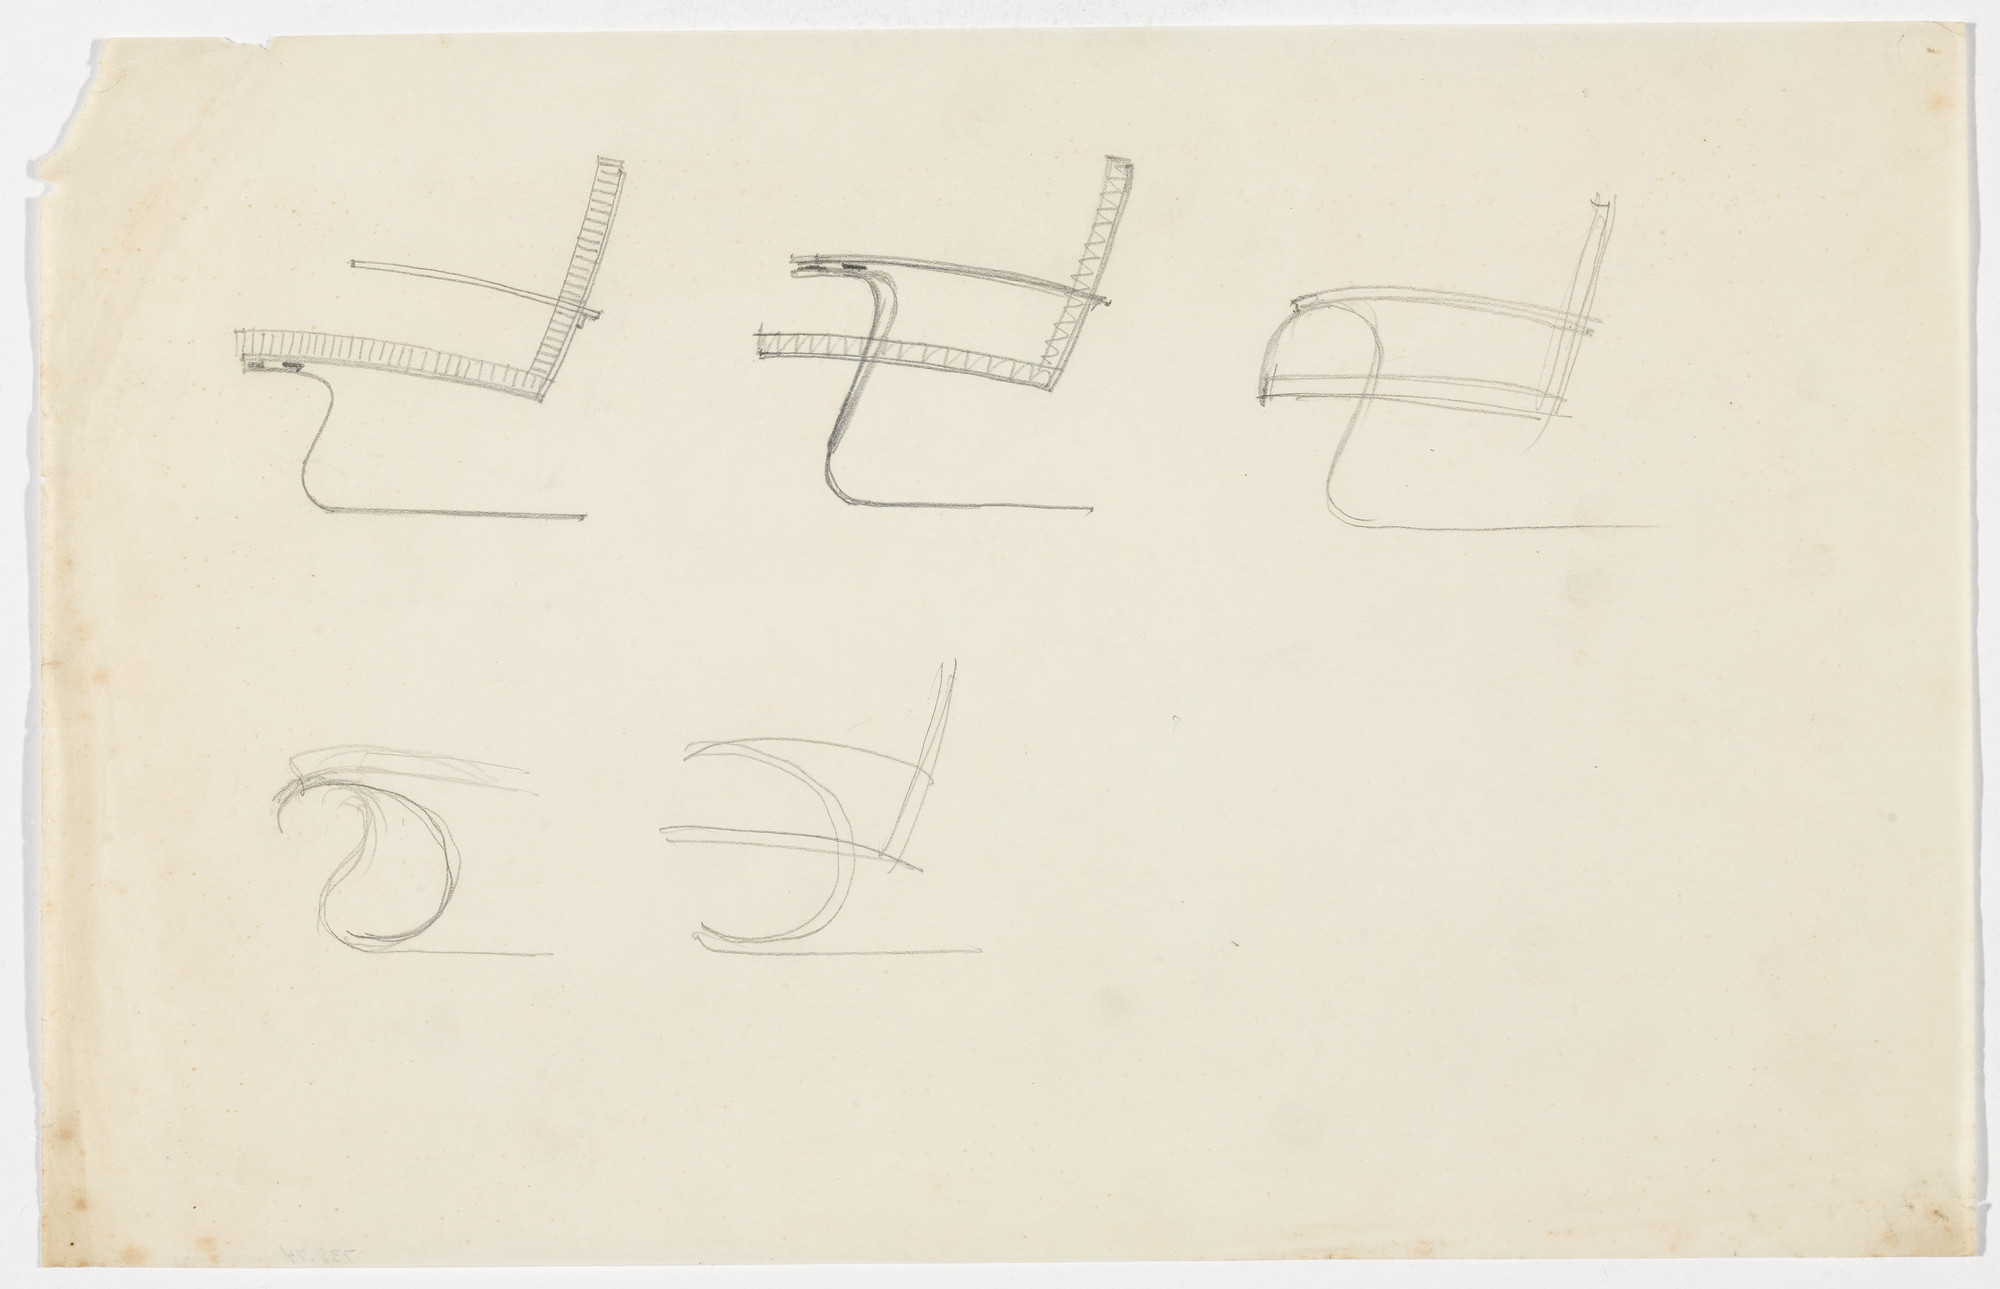 Ludwig Mies van der Rohe. Tugendhat Chair. Chair with Arms. (Elevation sketches). c.1930